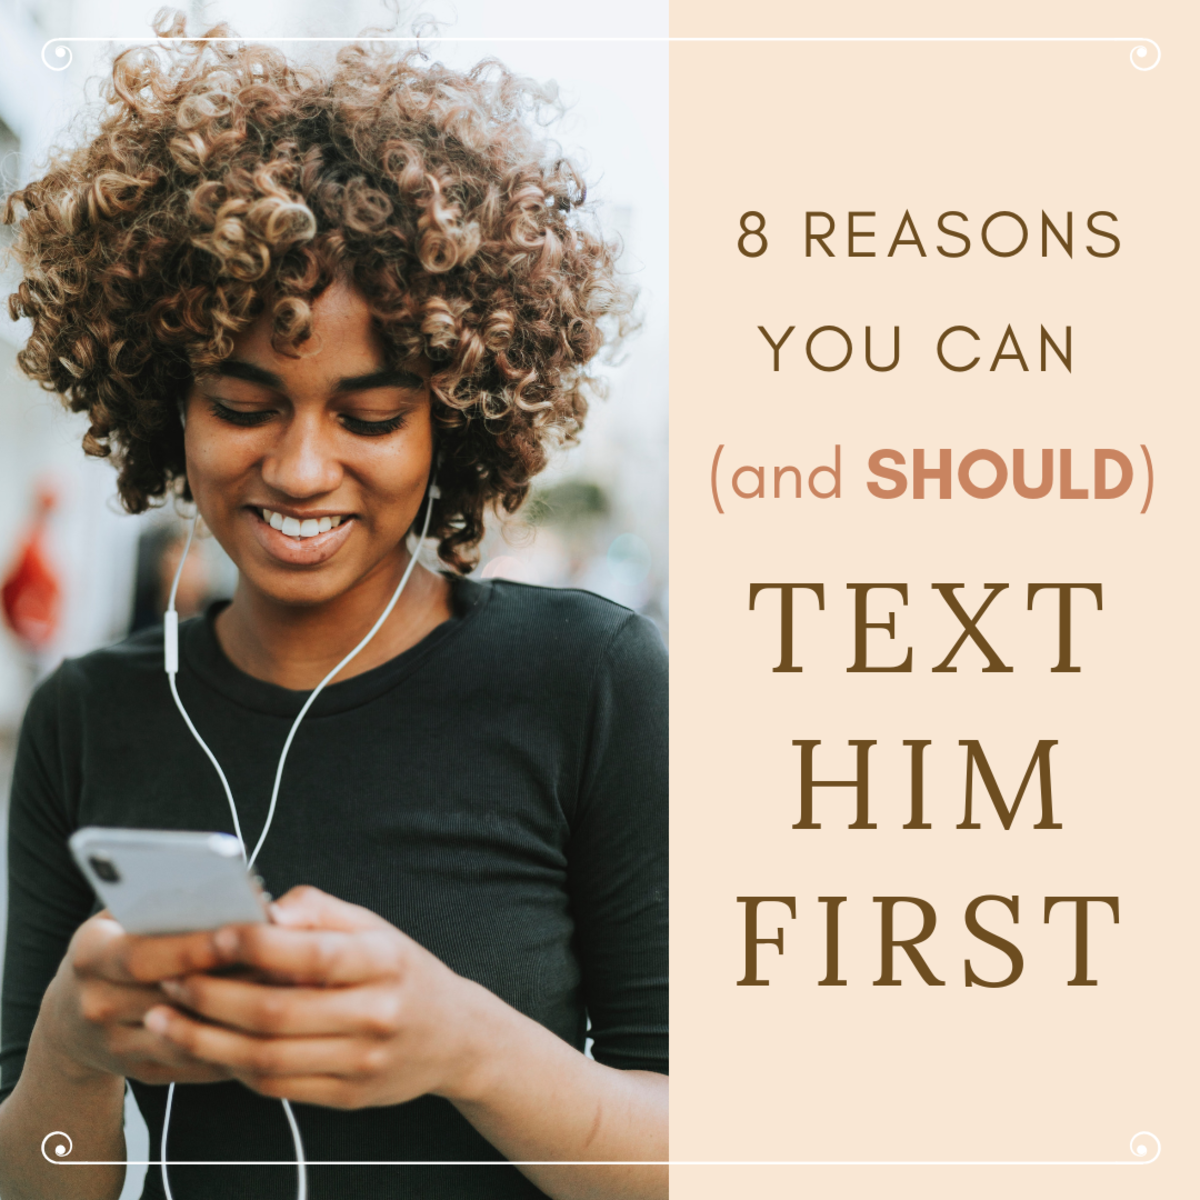 Should you be the first to text a guy